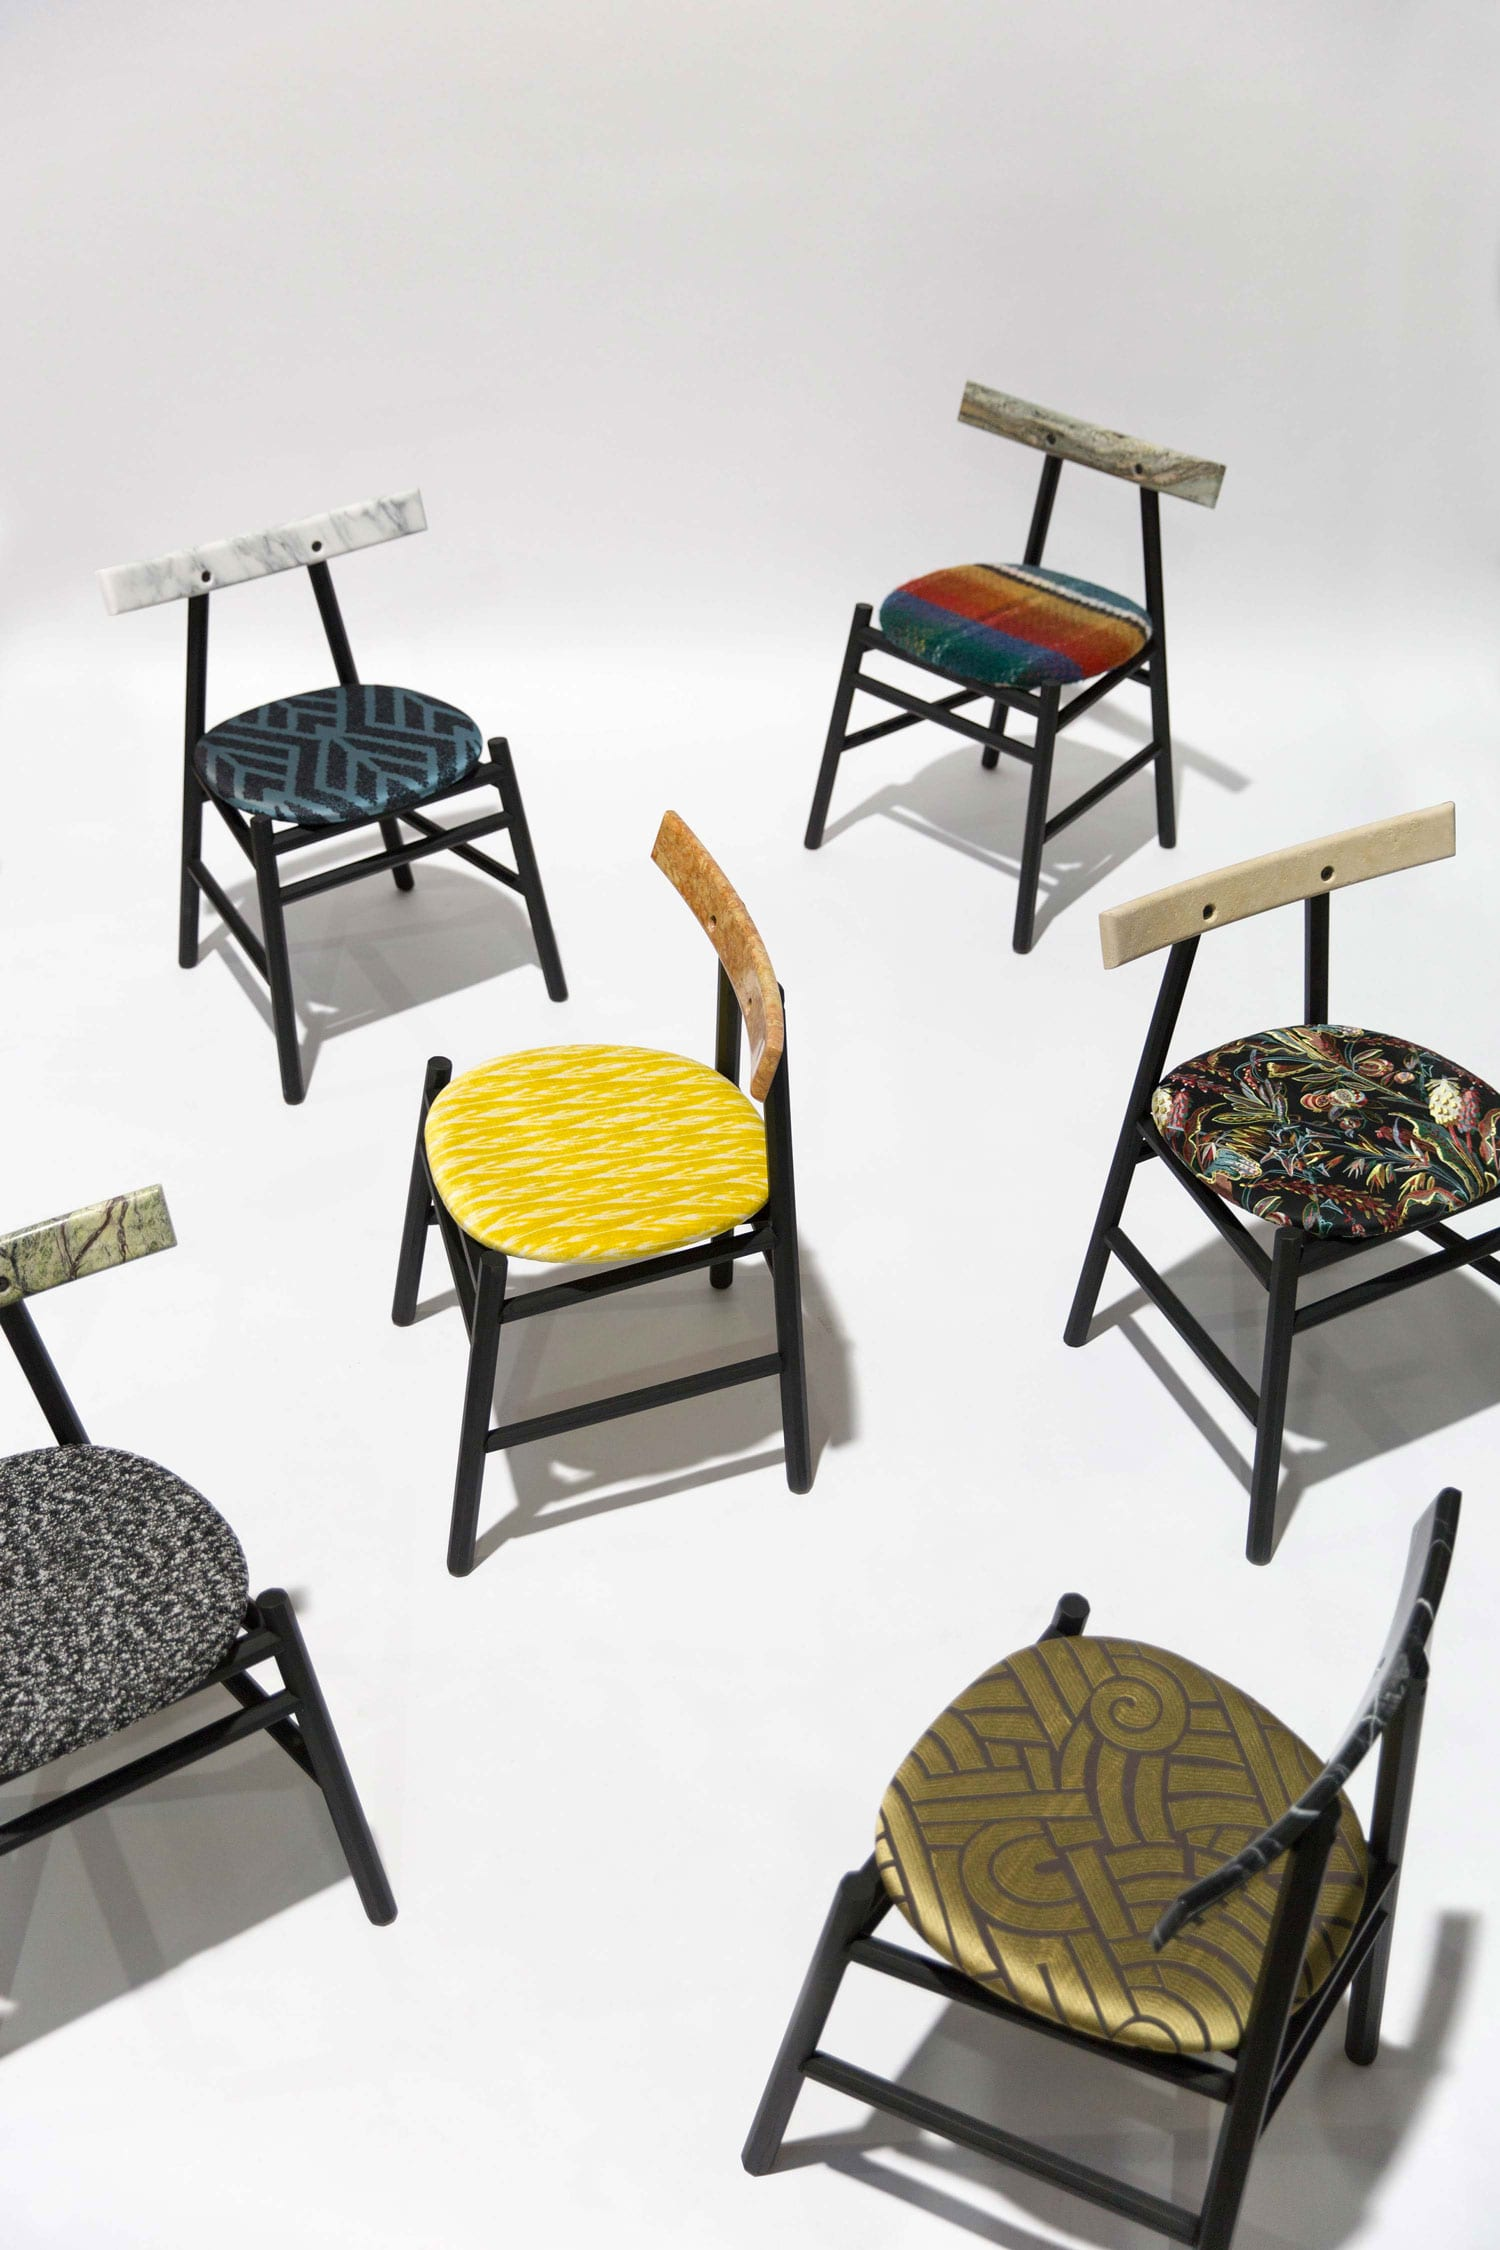 Limited Edition 6 Chairs by La Chance & Pierre Frey at Maison & Objet 2018 | Yellowtrace